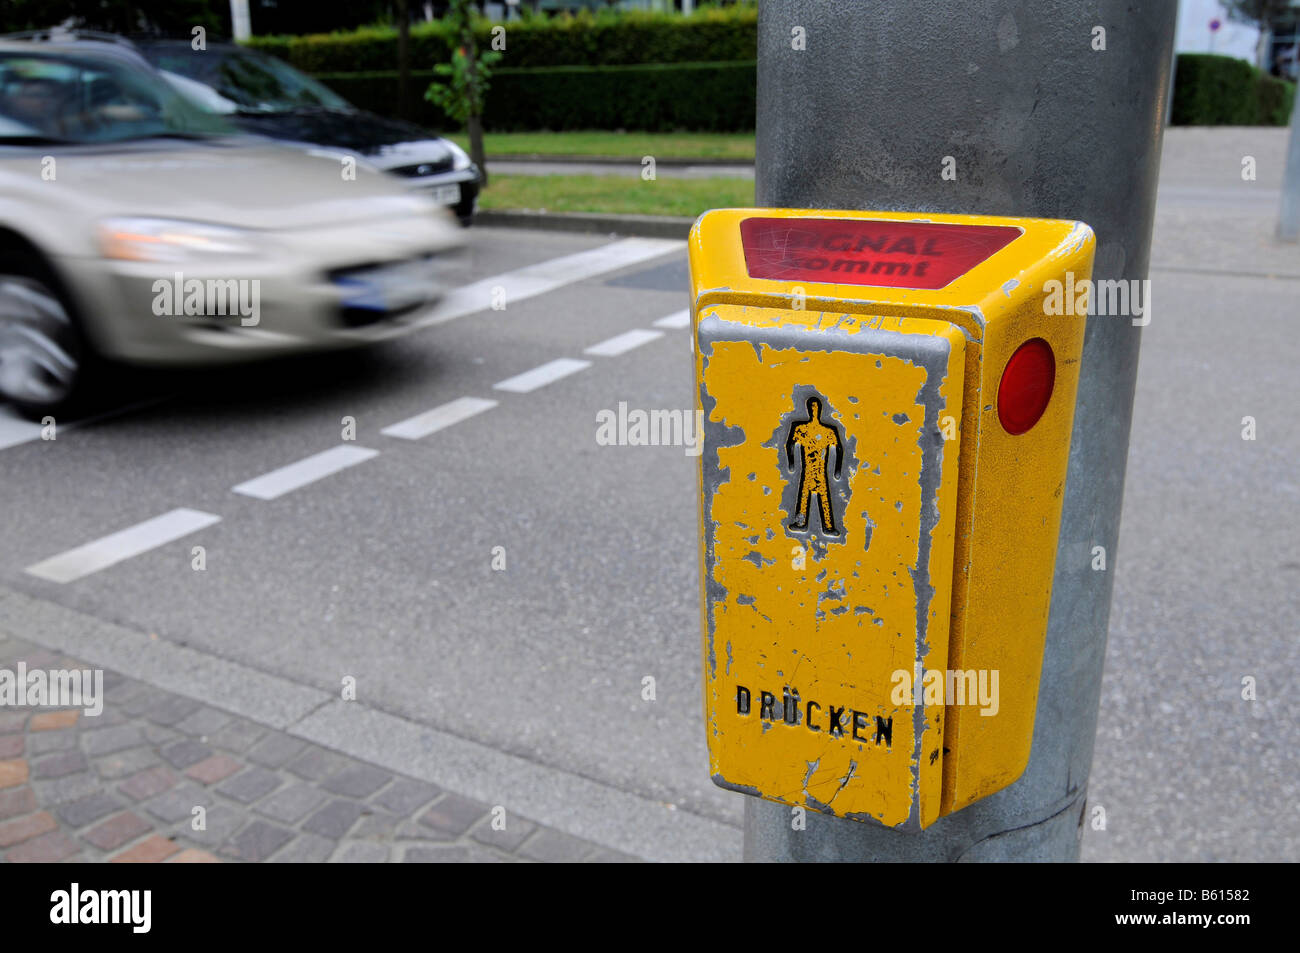 Crossing light request button for pedestrians, label 'signal coming' is lit, blurred car at back, Stuttgart, - Stock Image